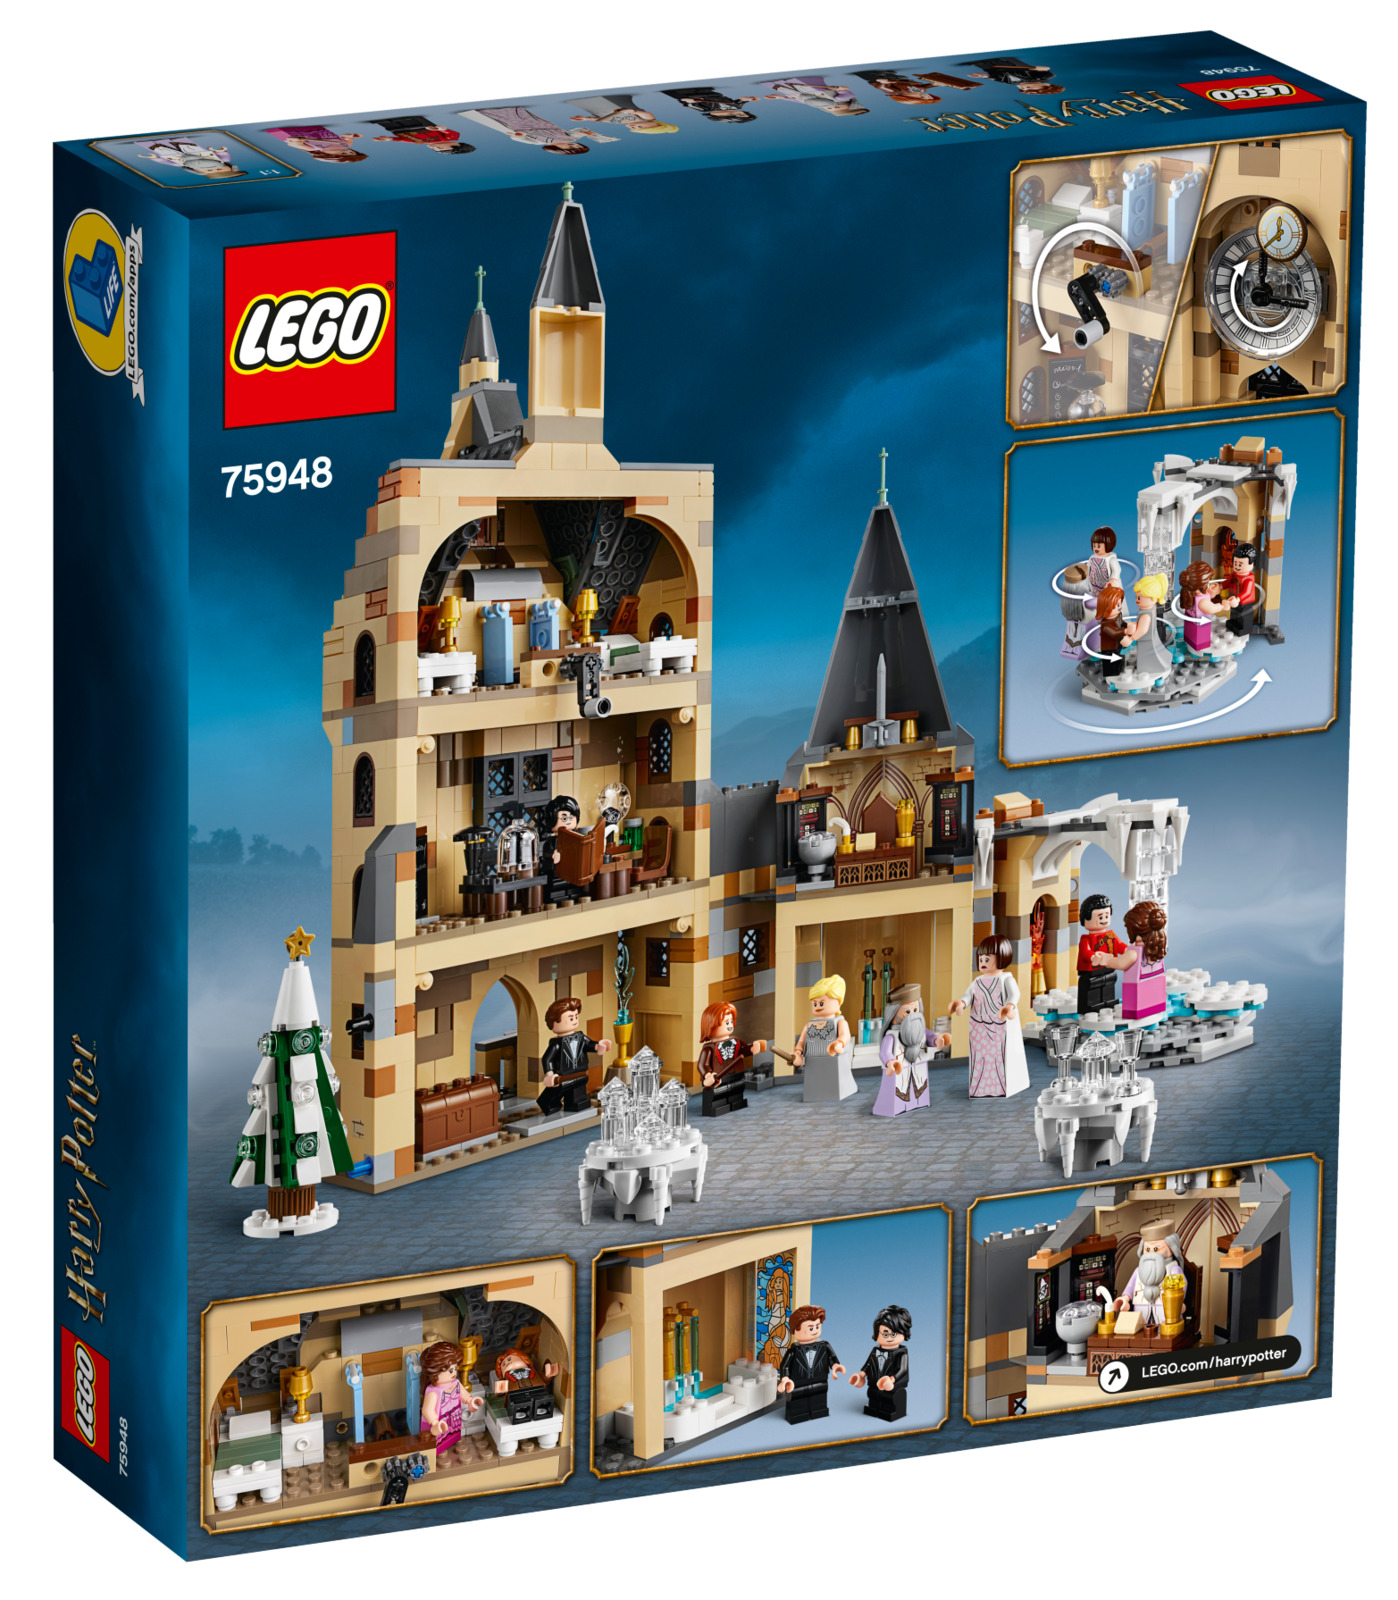 LEGO Harry Potter - Hogwarts Clock Tower (75948) image